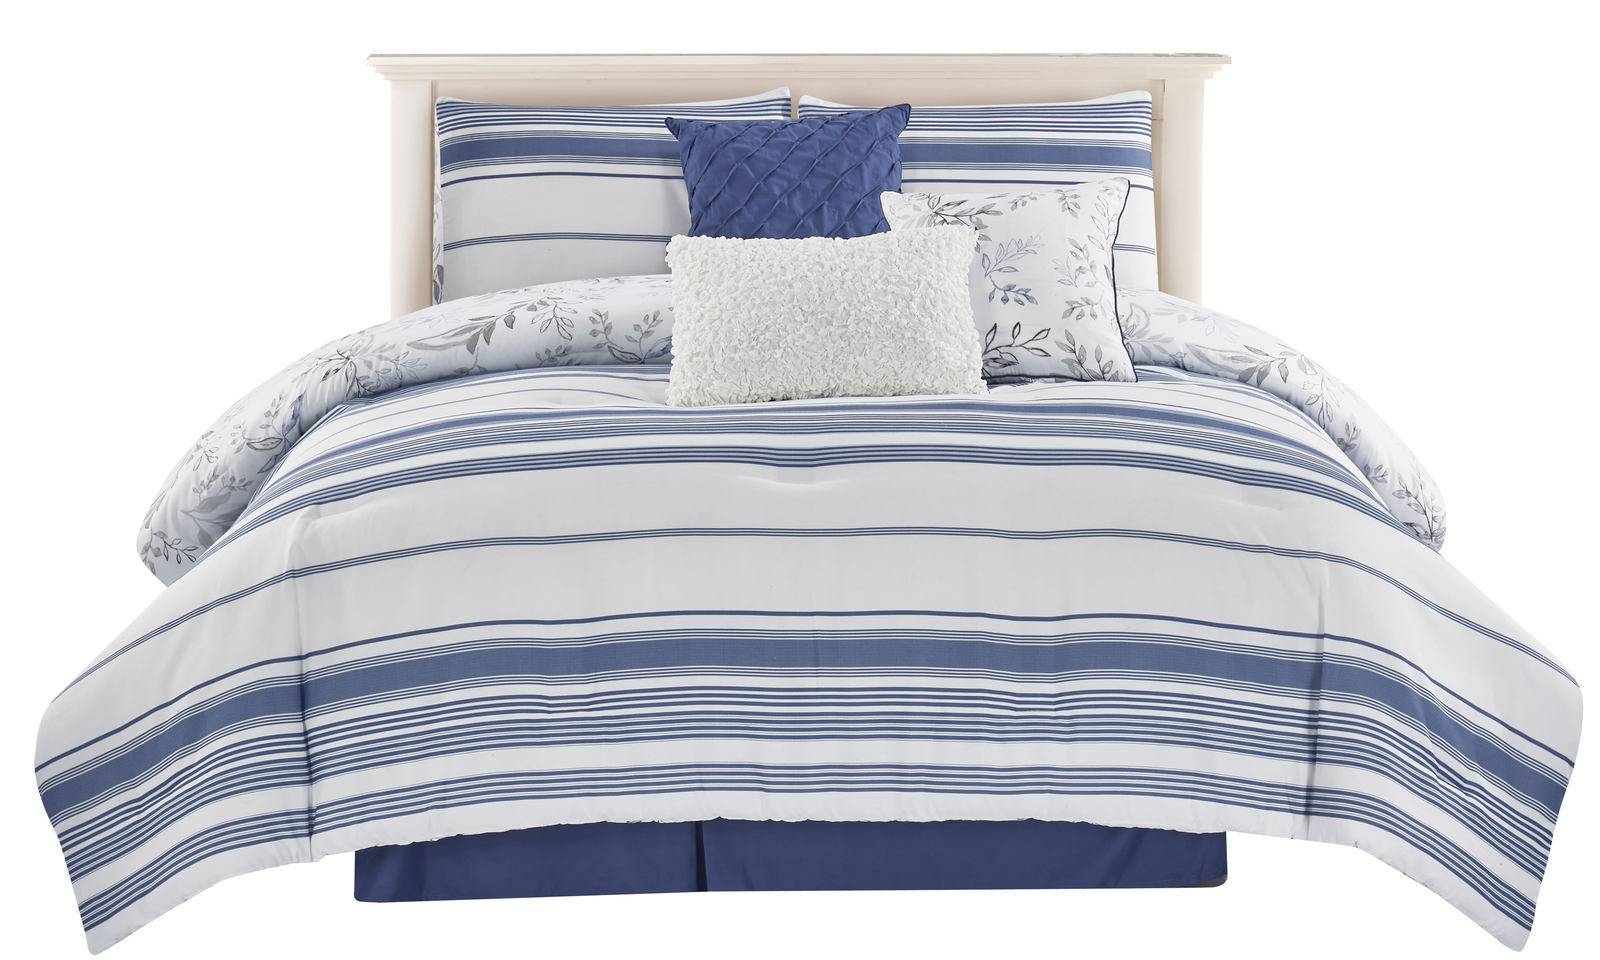 Mikita blue comforter front 4200x2520